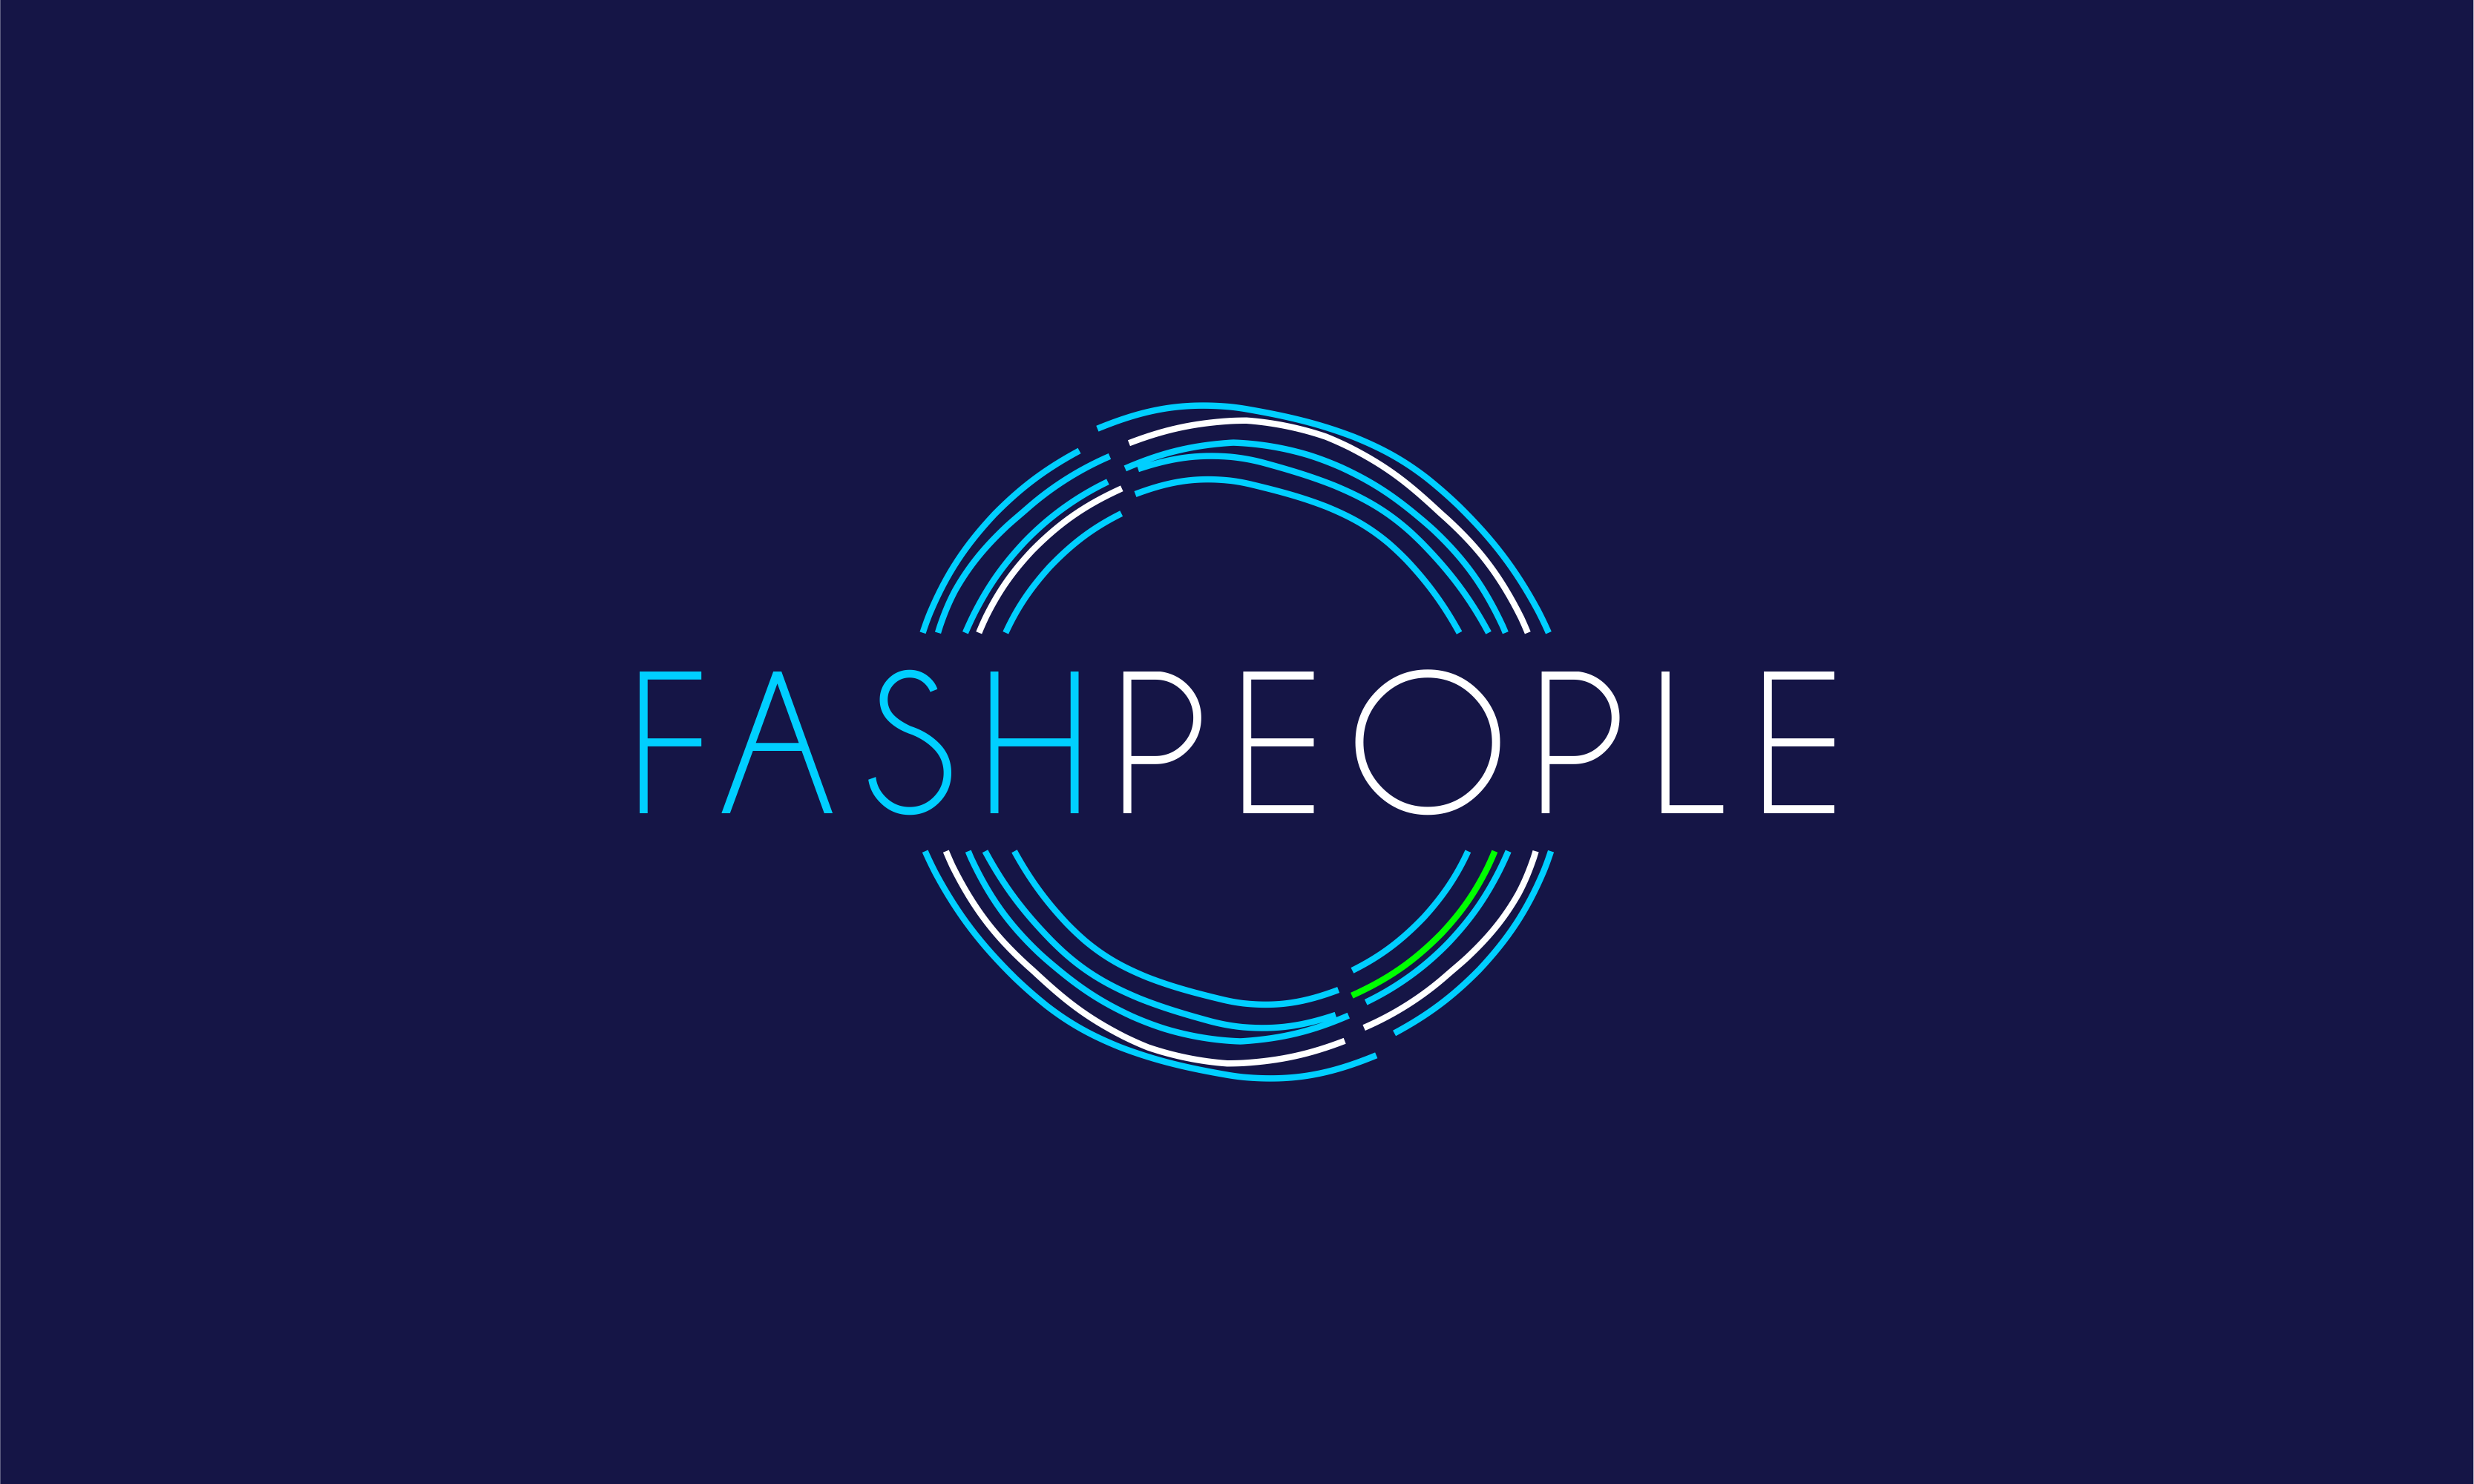 Fashpeople